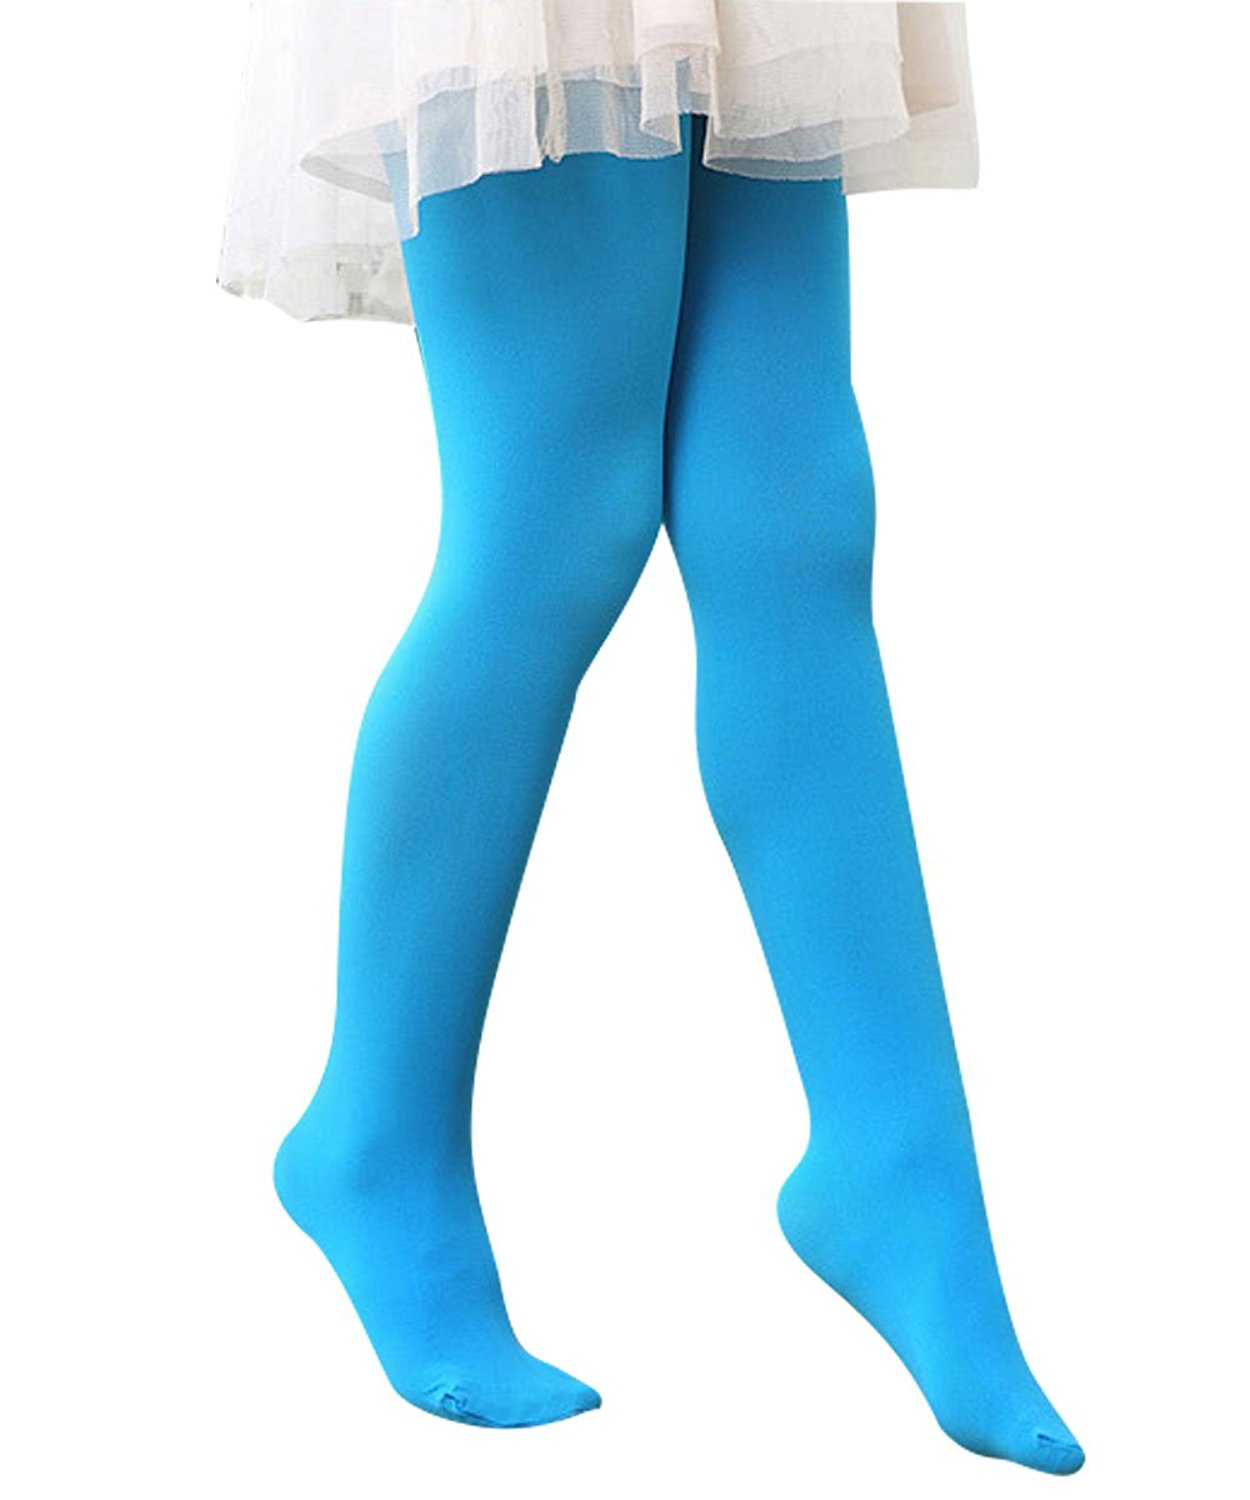 816e317392d6c Get Quotations · Durio Girls Stretchy Soft Legging Microfiber Comfortable  Kids Footed Tights Stockings Child Ballet Dance Tights Leggings